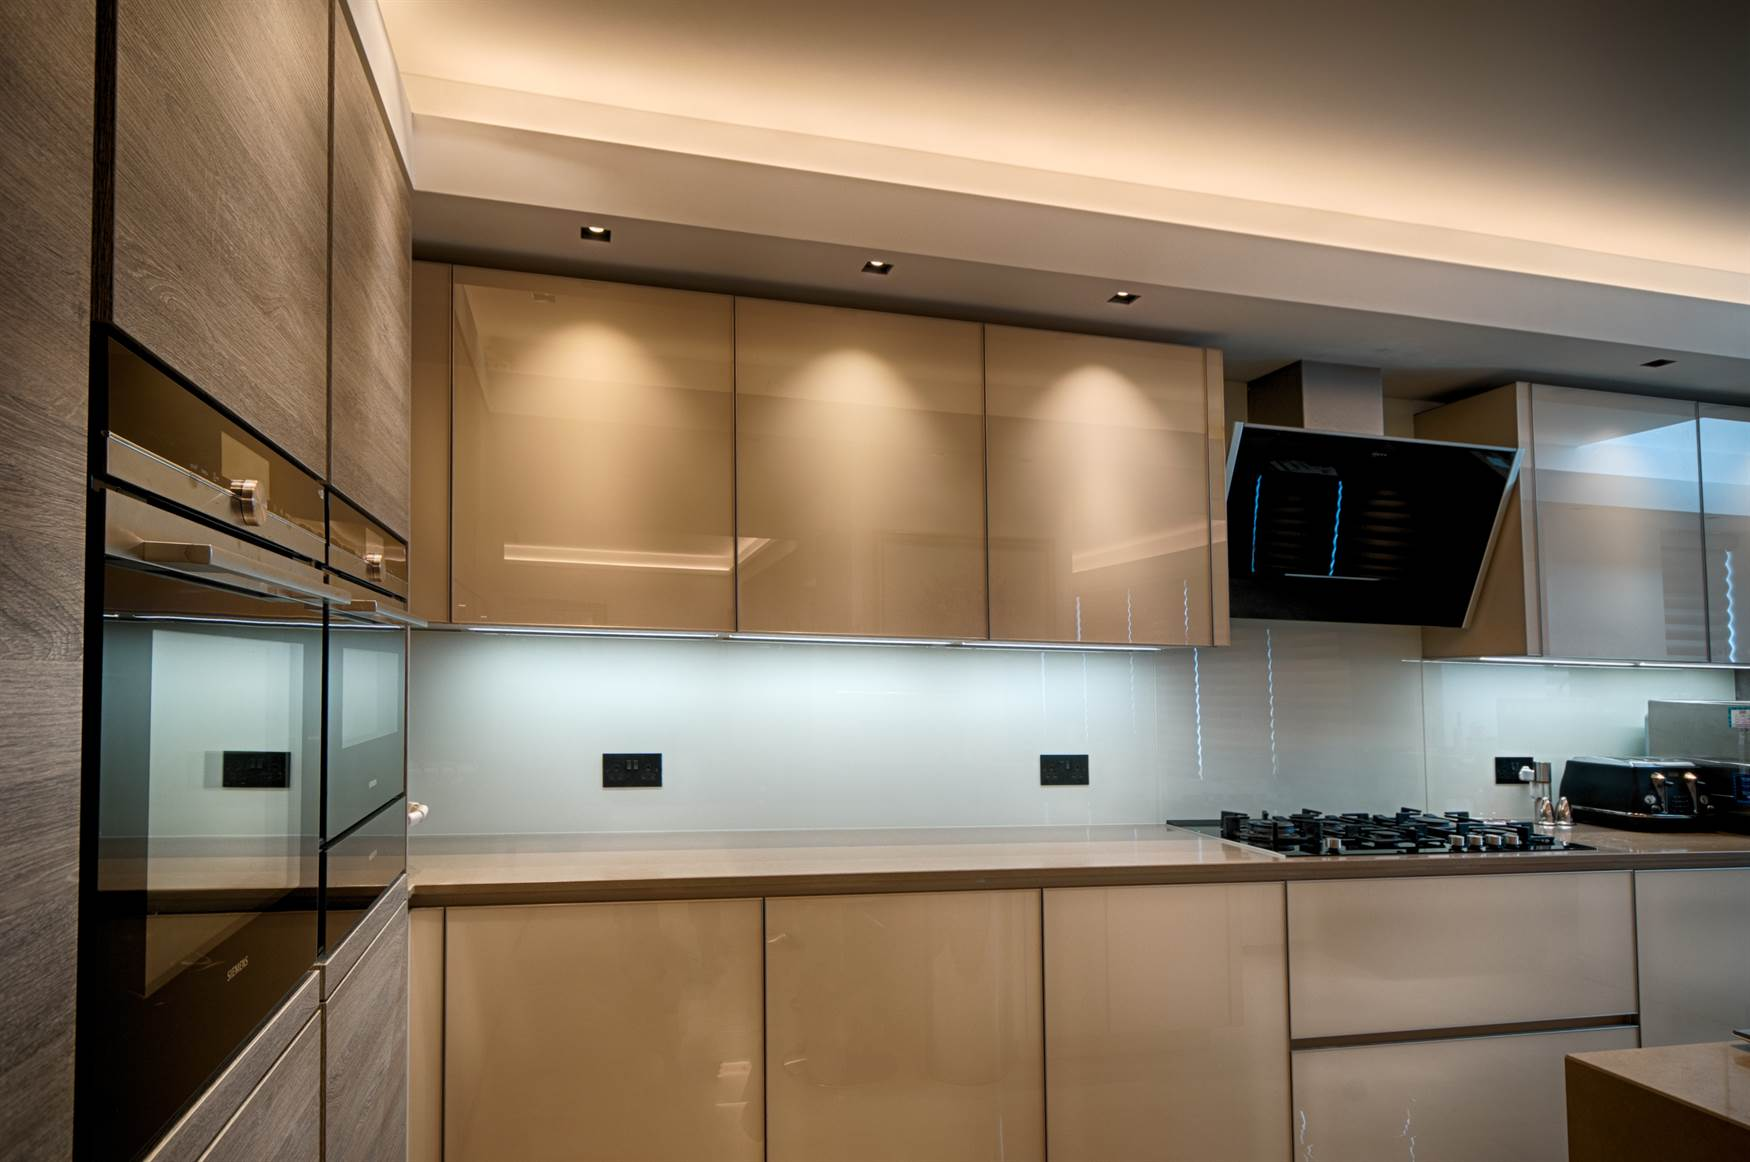 Kitchen cabinets illuminated by trimless downlights